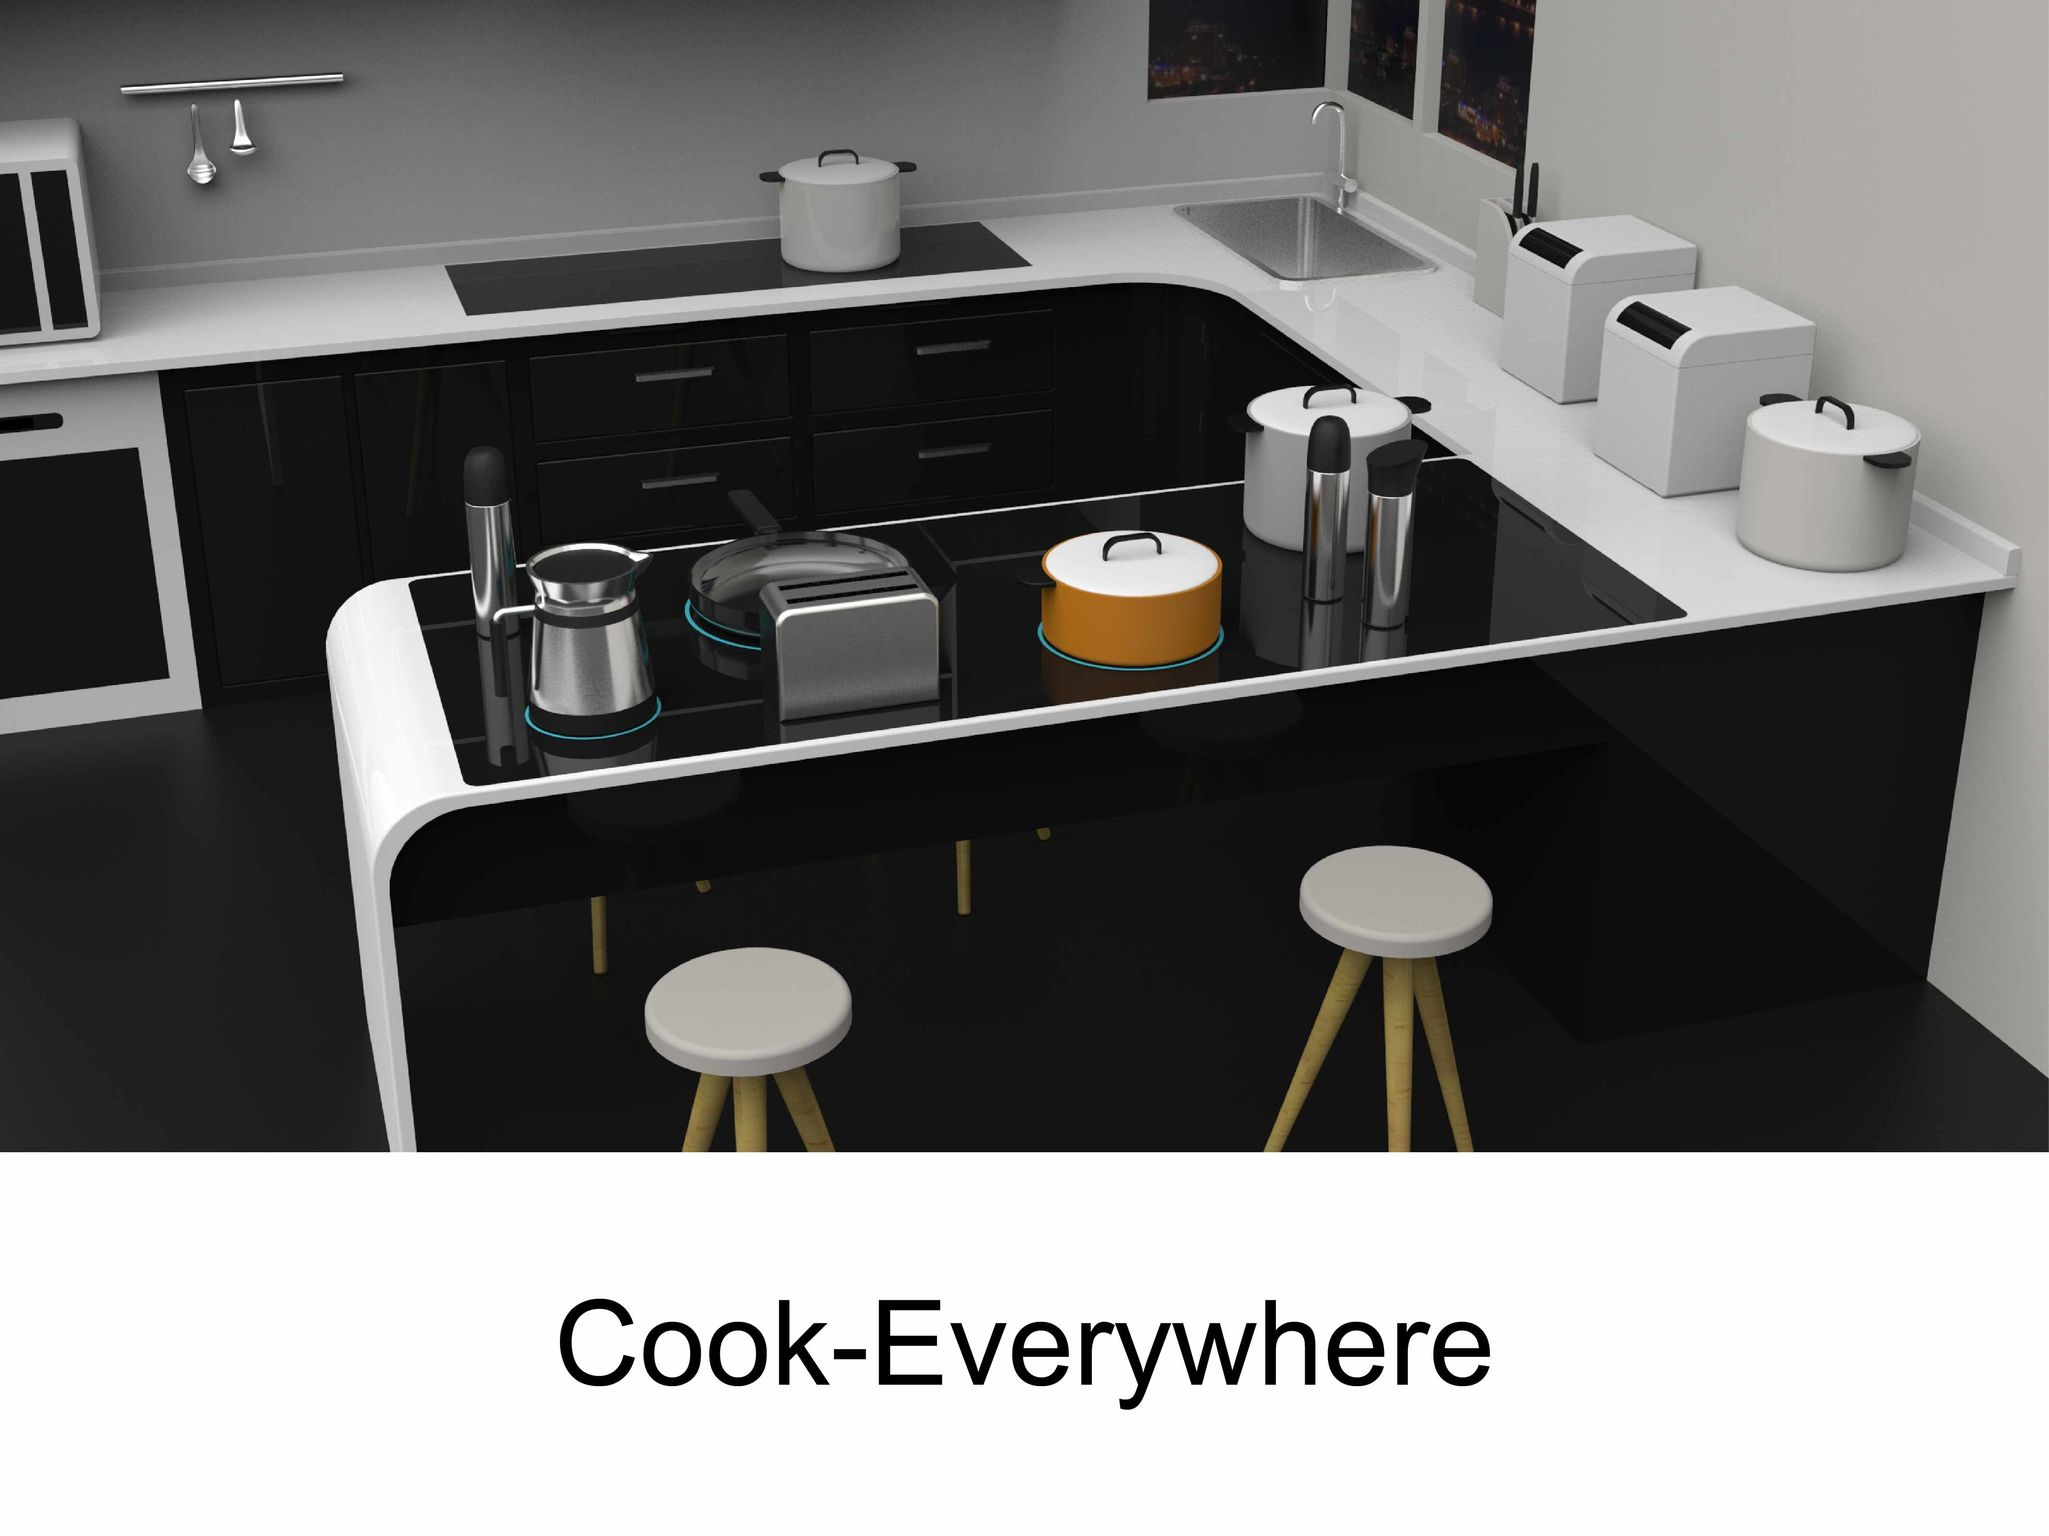 Uncategorized Wireless Kitchen Appliances kitchen wireless under cabinet lighting motion sensor cook everywhere entry if world design guide appliances